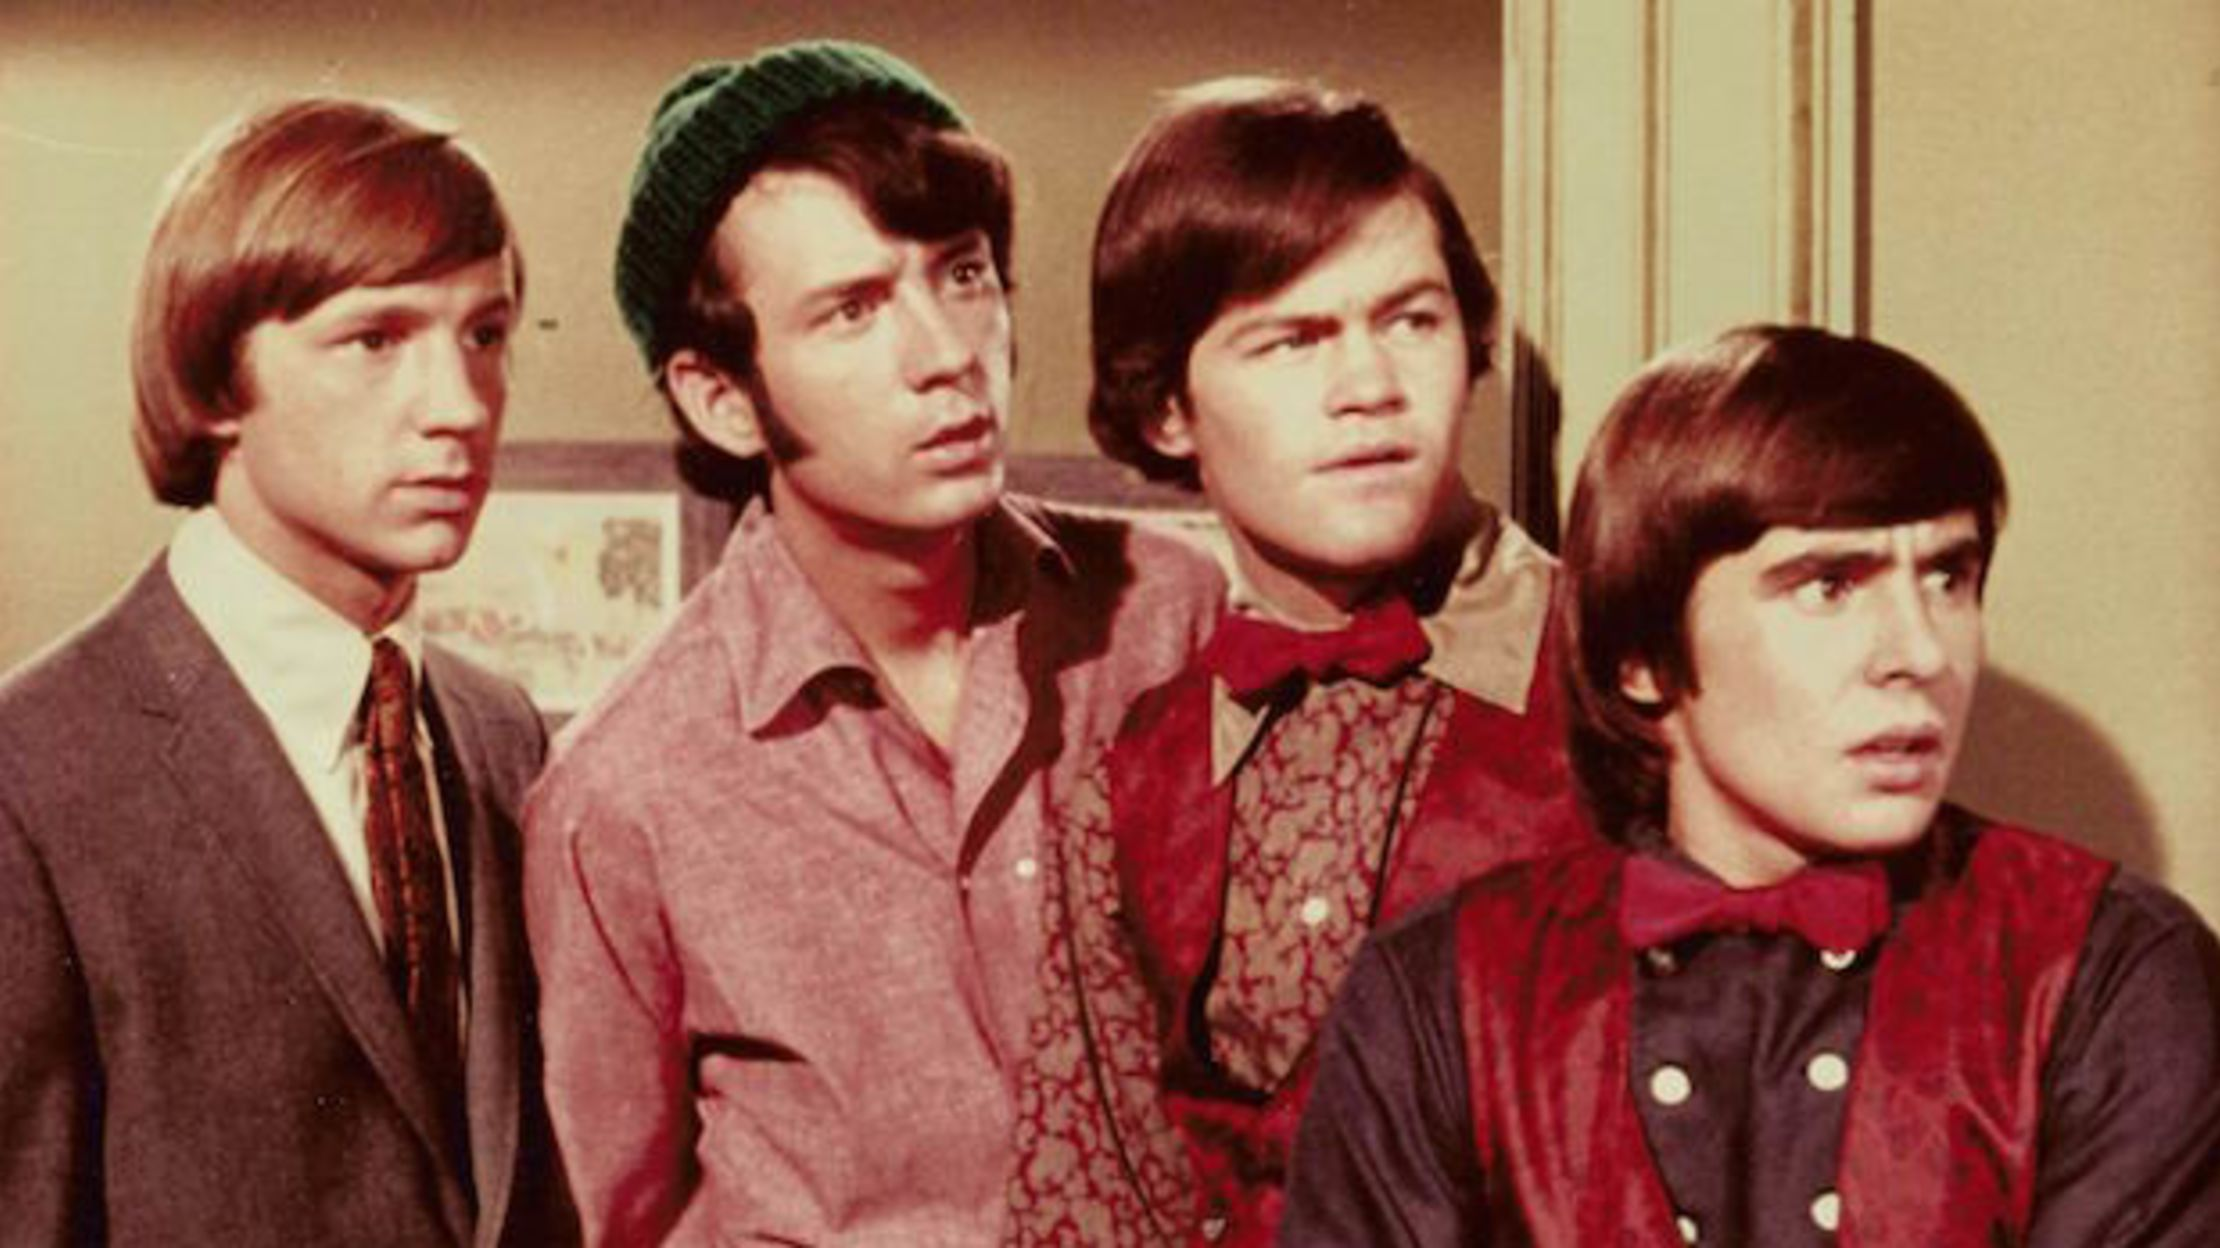 11 Things You Might Not Know About The Monkees | Mental Floss